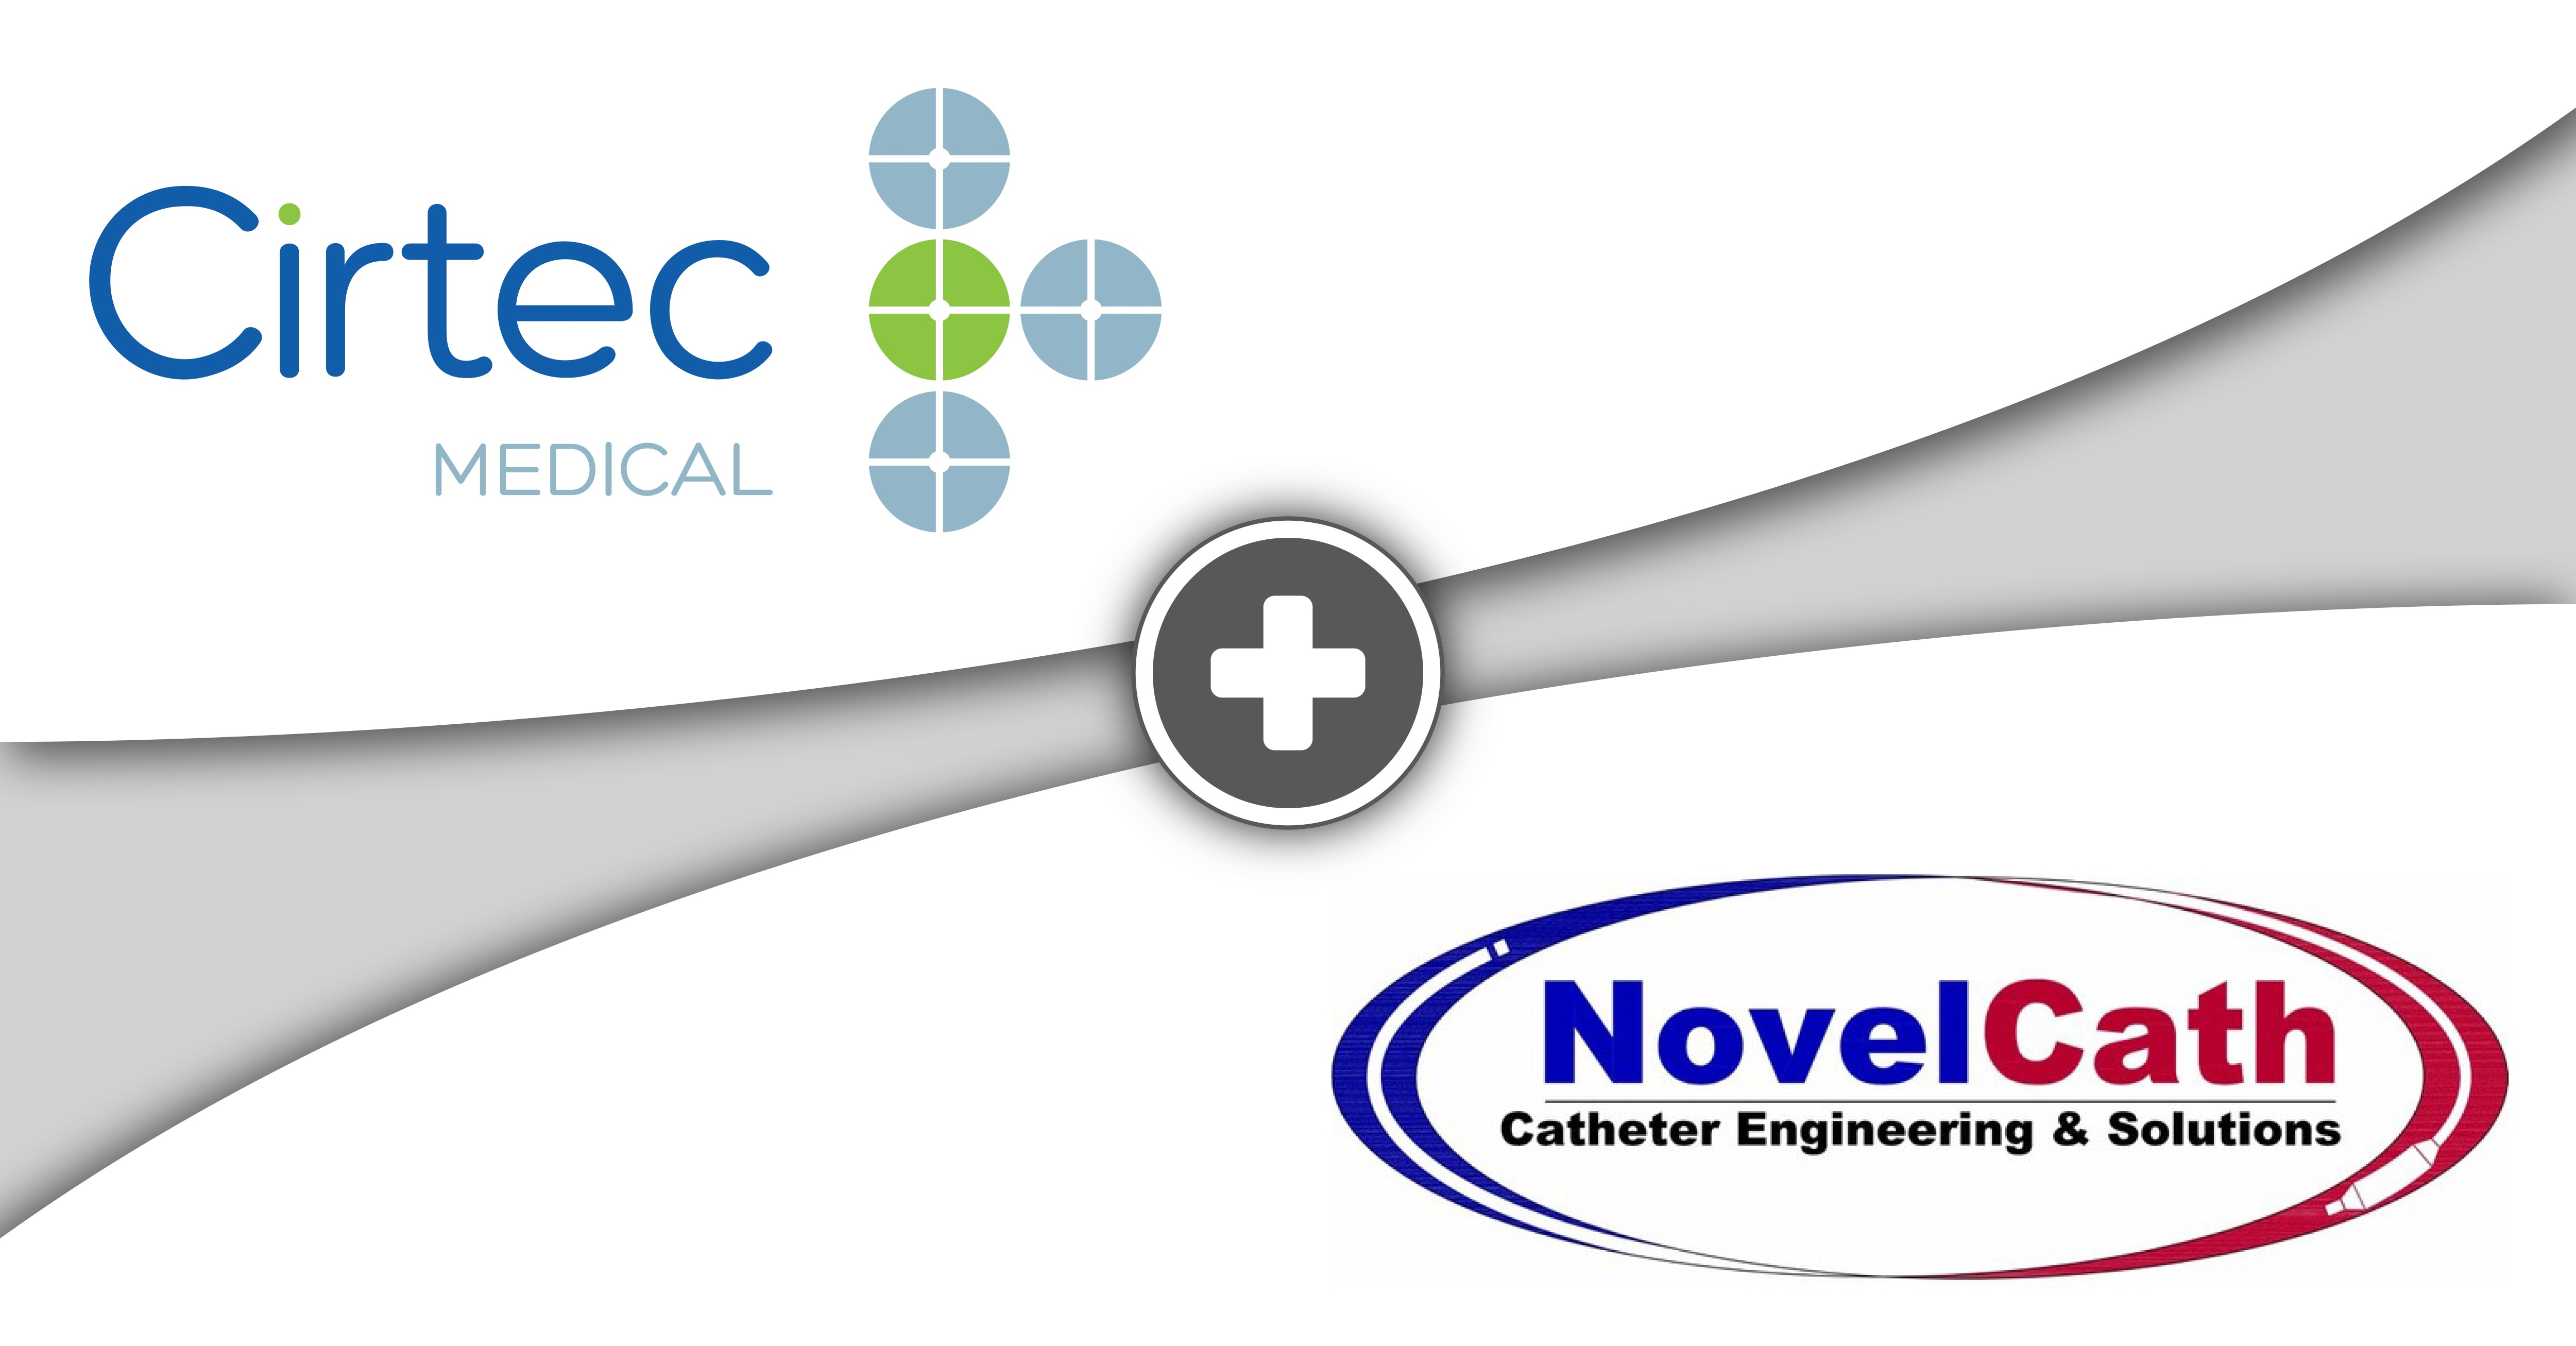 Cirtec Medical Announces Acquisition of NovelCath